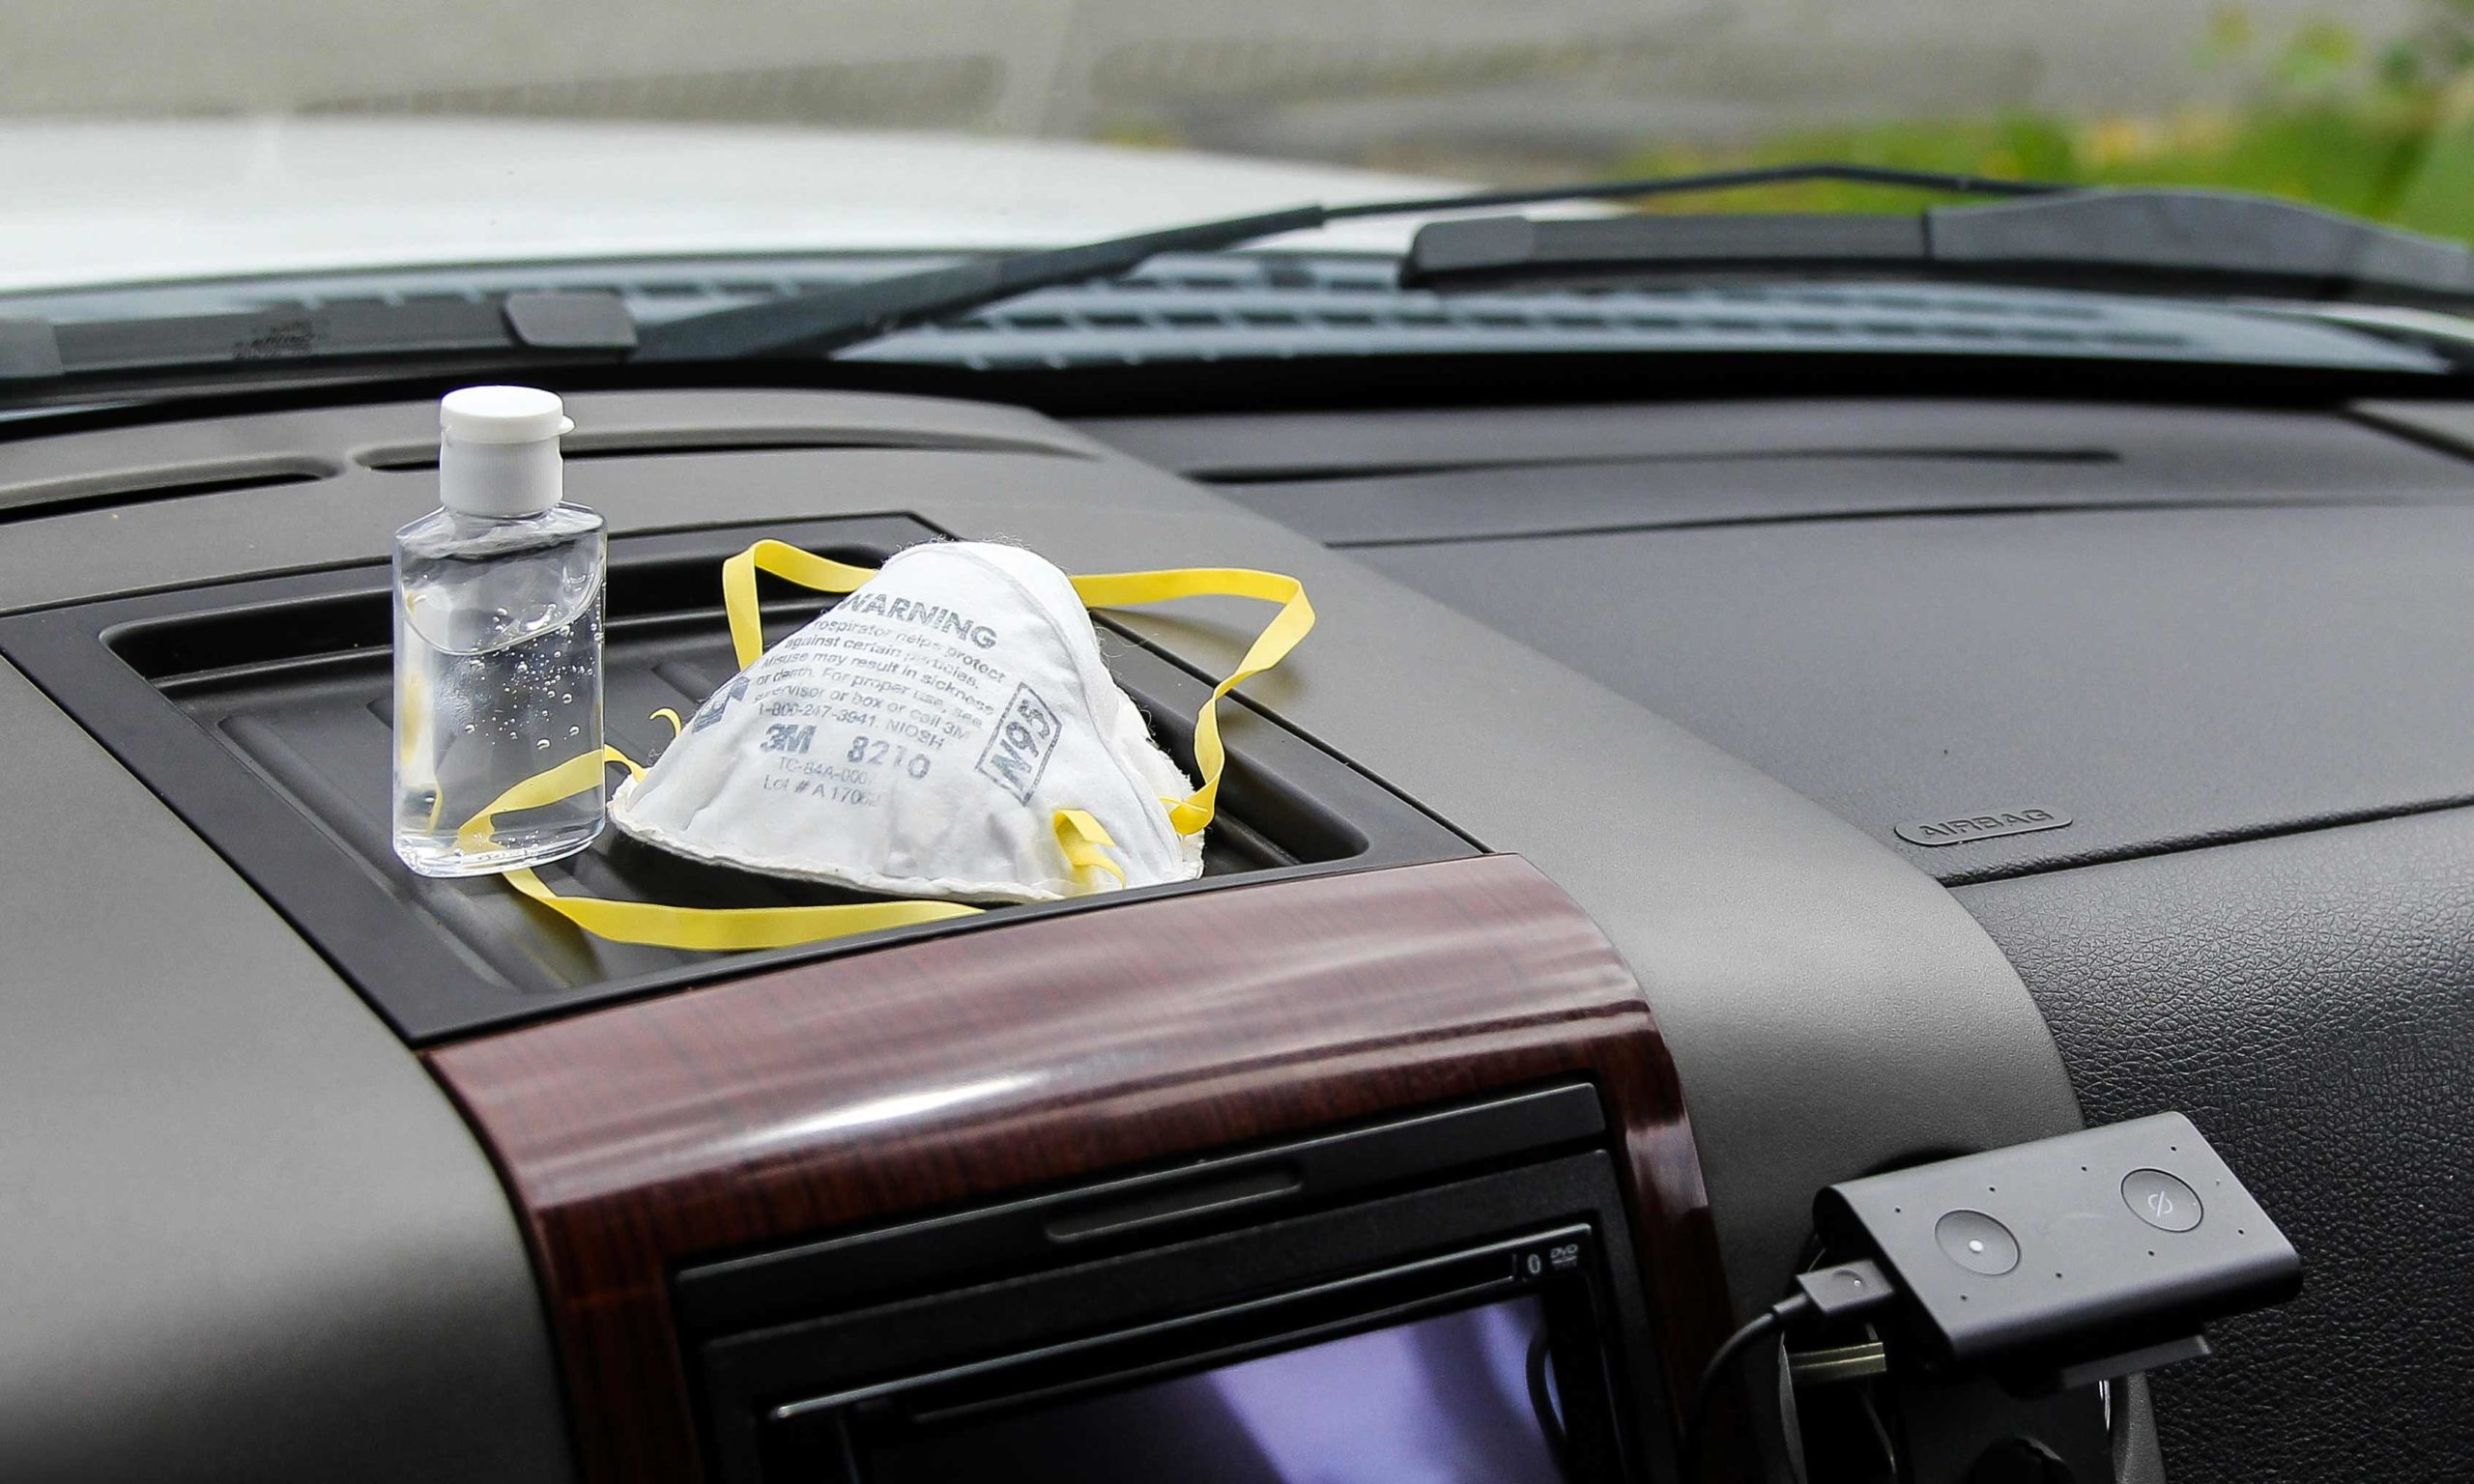 N95 mask and hand sanitizer on cars dashboard